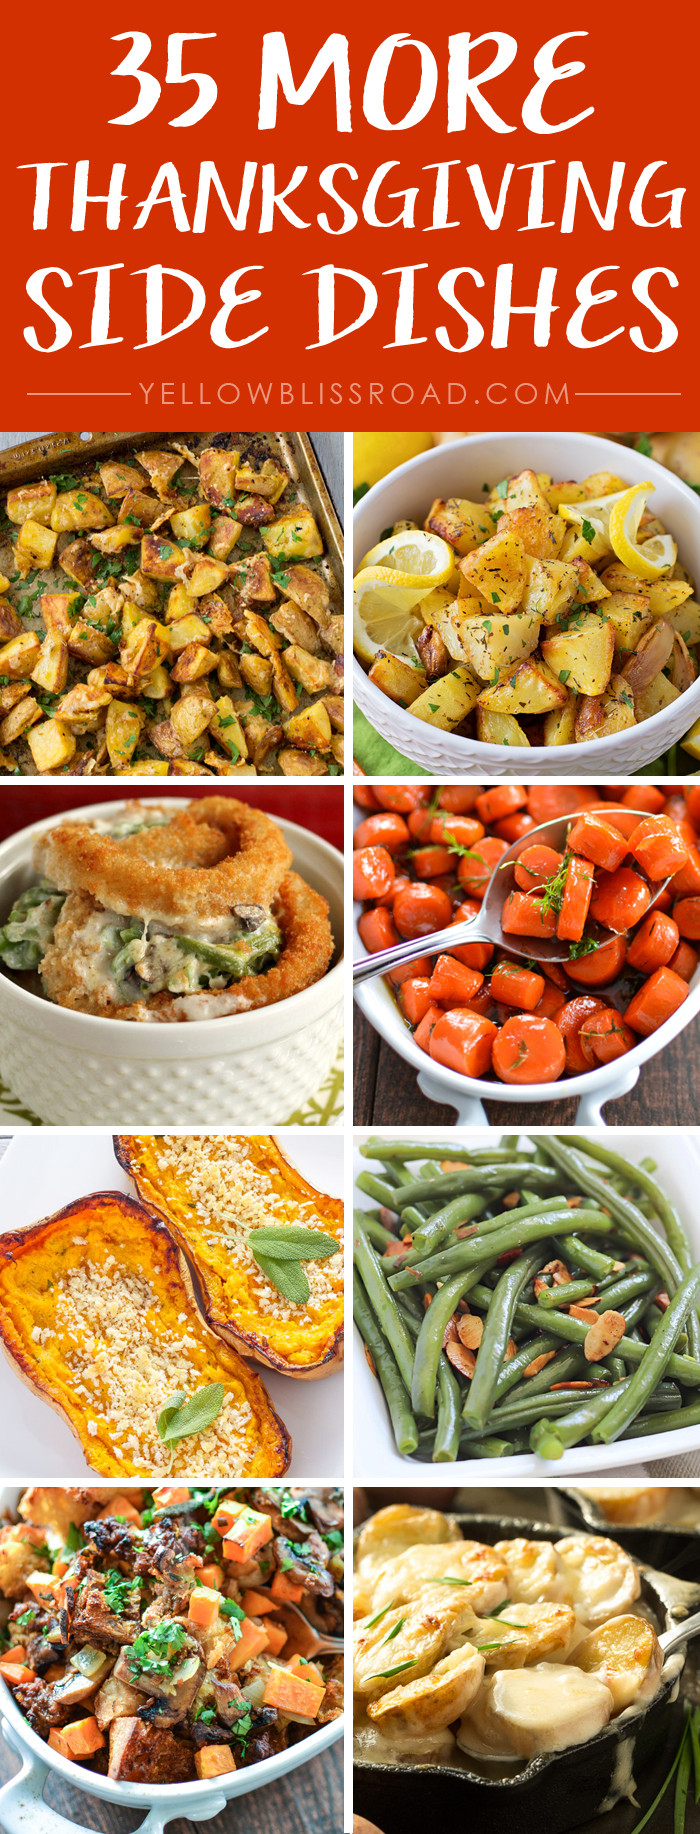 Side Dishes For Thanksgiving Turkey Dinner  Twice Baked Potato Casserole with Potato Chip Crust